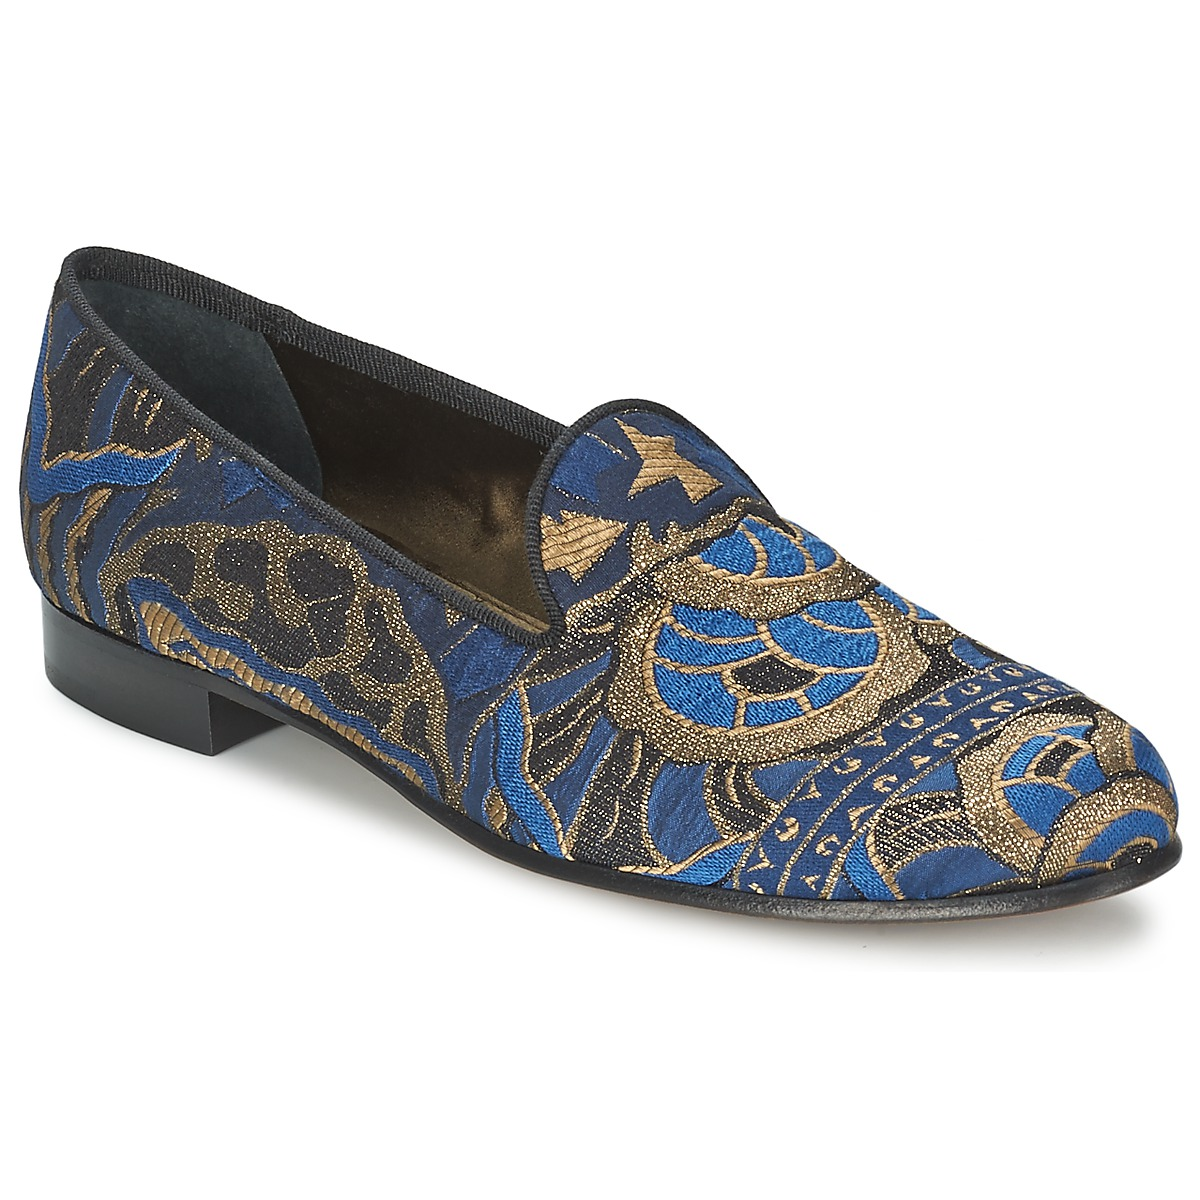 Smart-shoes Etro 3046 Black / Blue